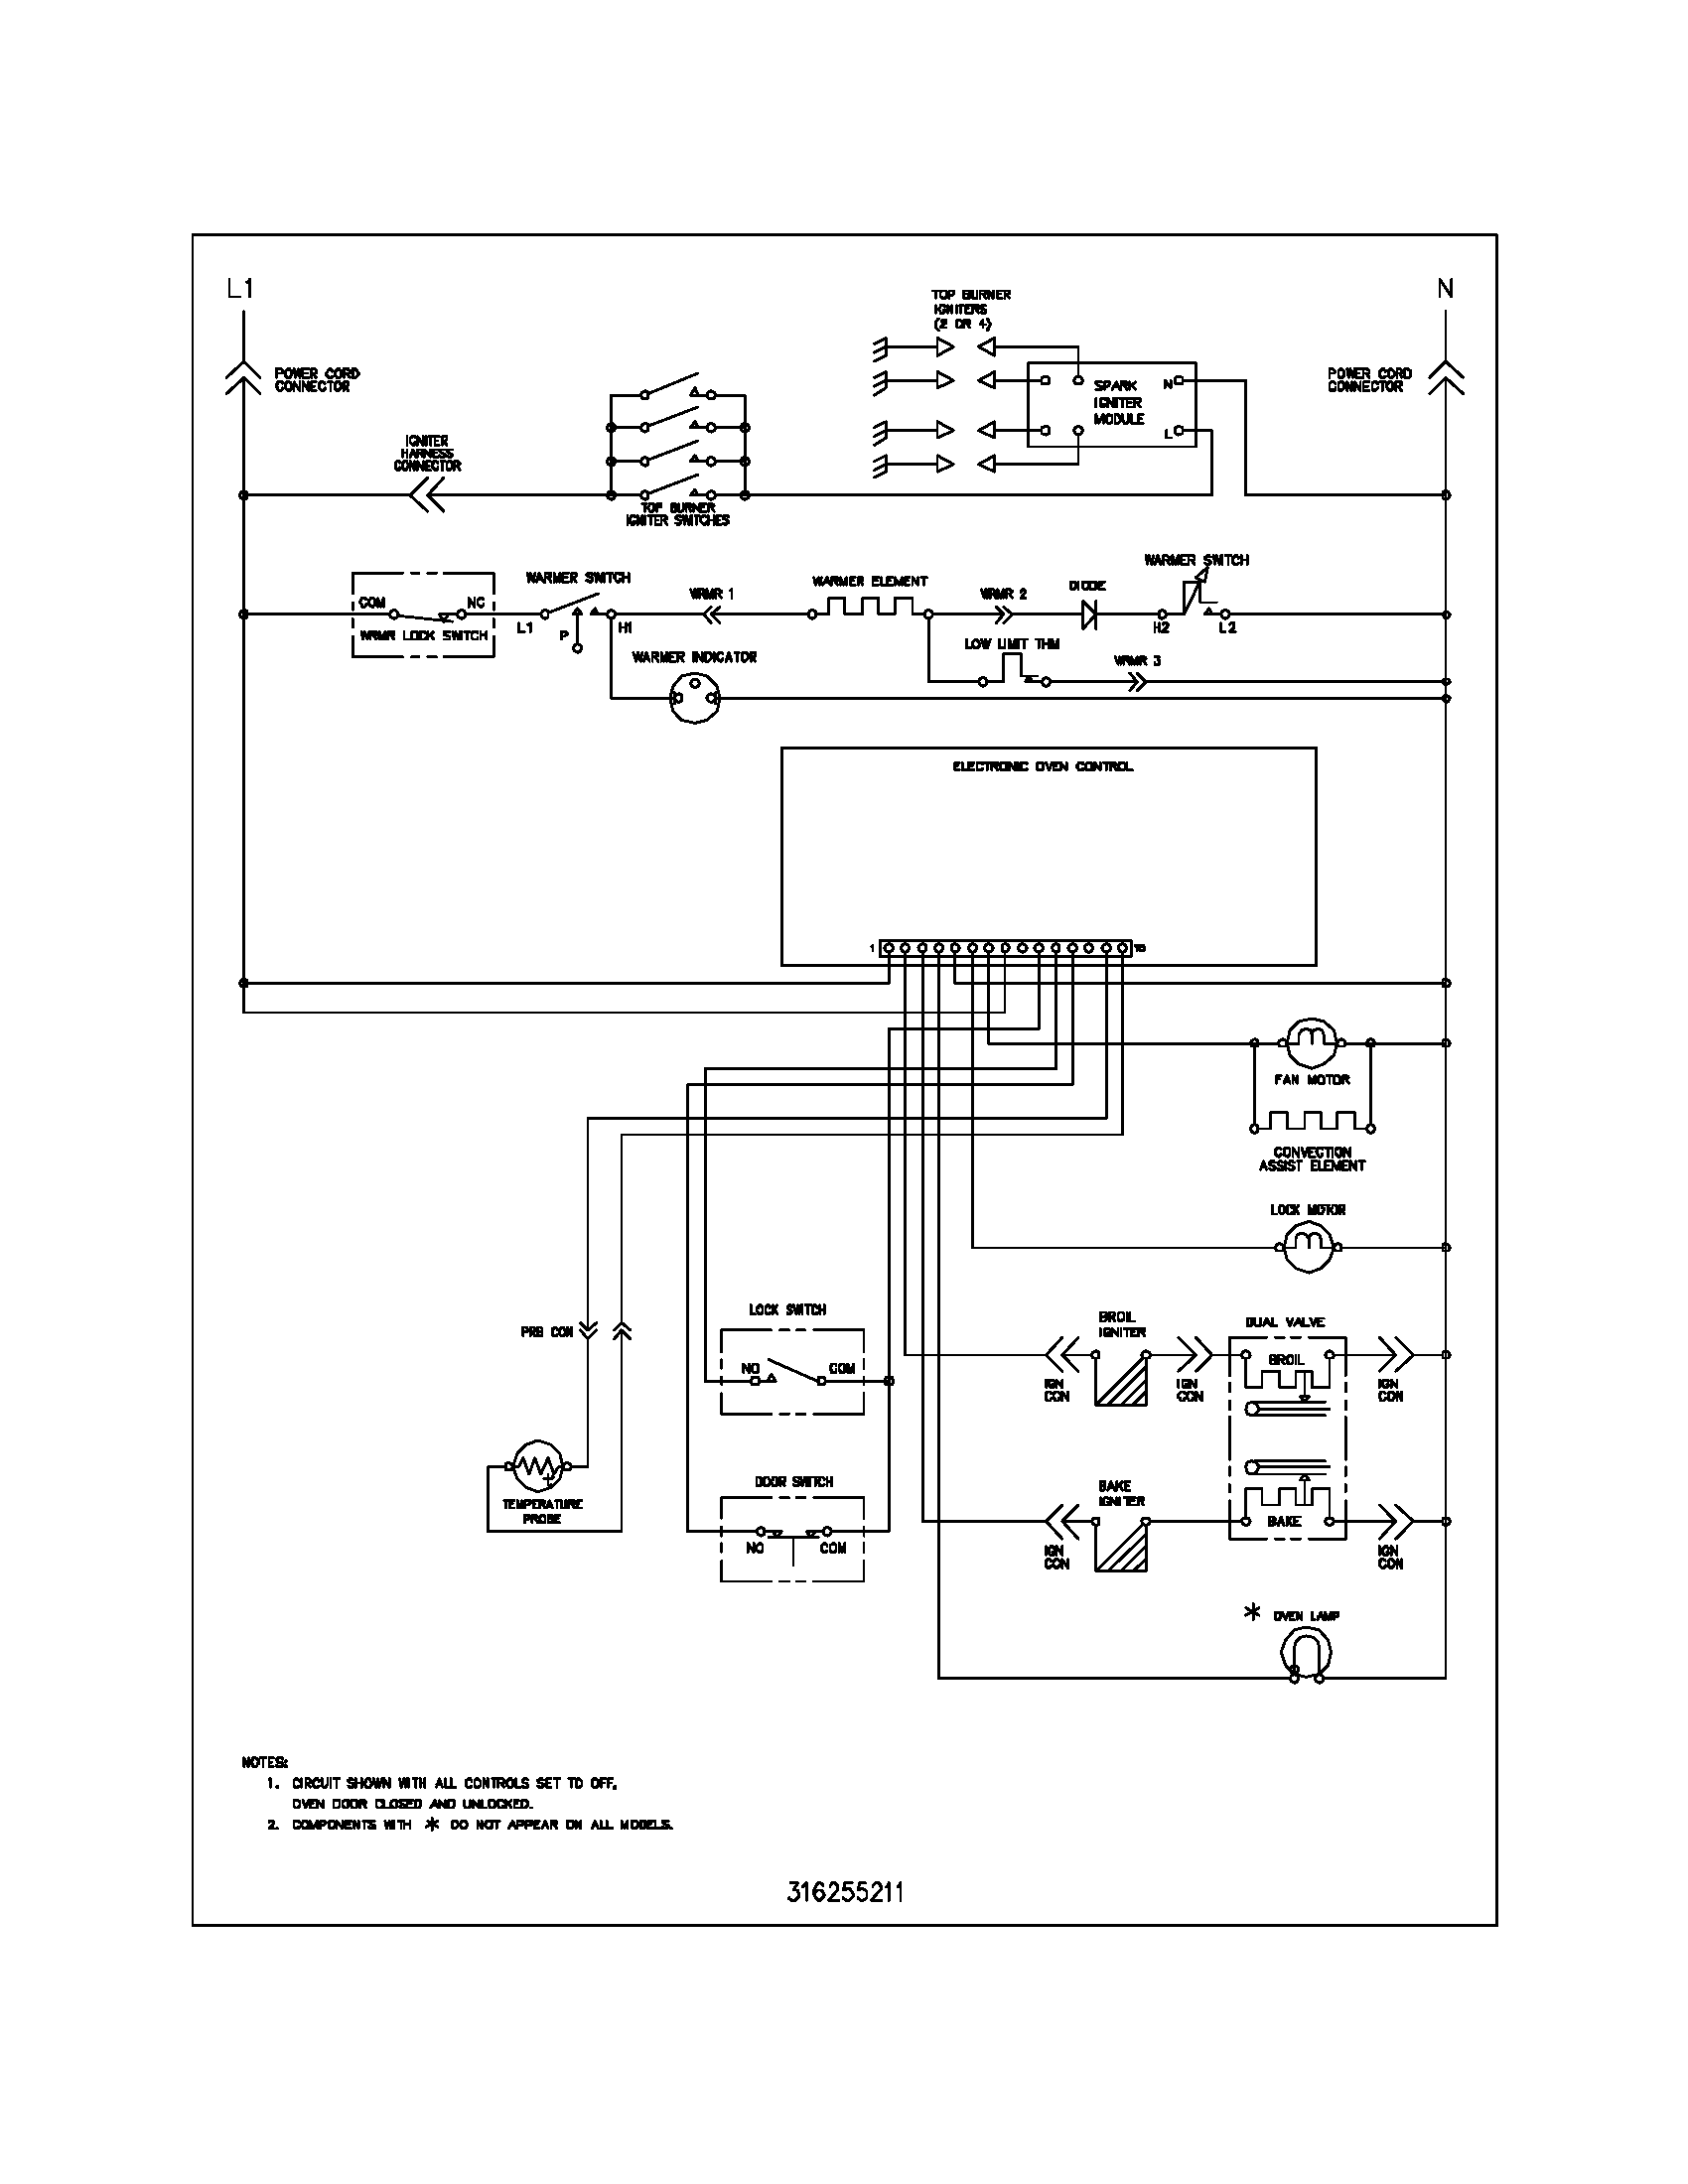 wiring schematic parts frigidaire plgf389ccc gas range timer stove clocks and appliance electric fireplace wiring diagram at reclaimingppi.co